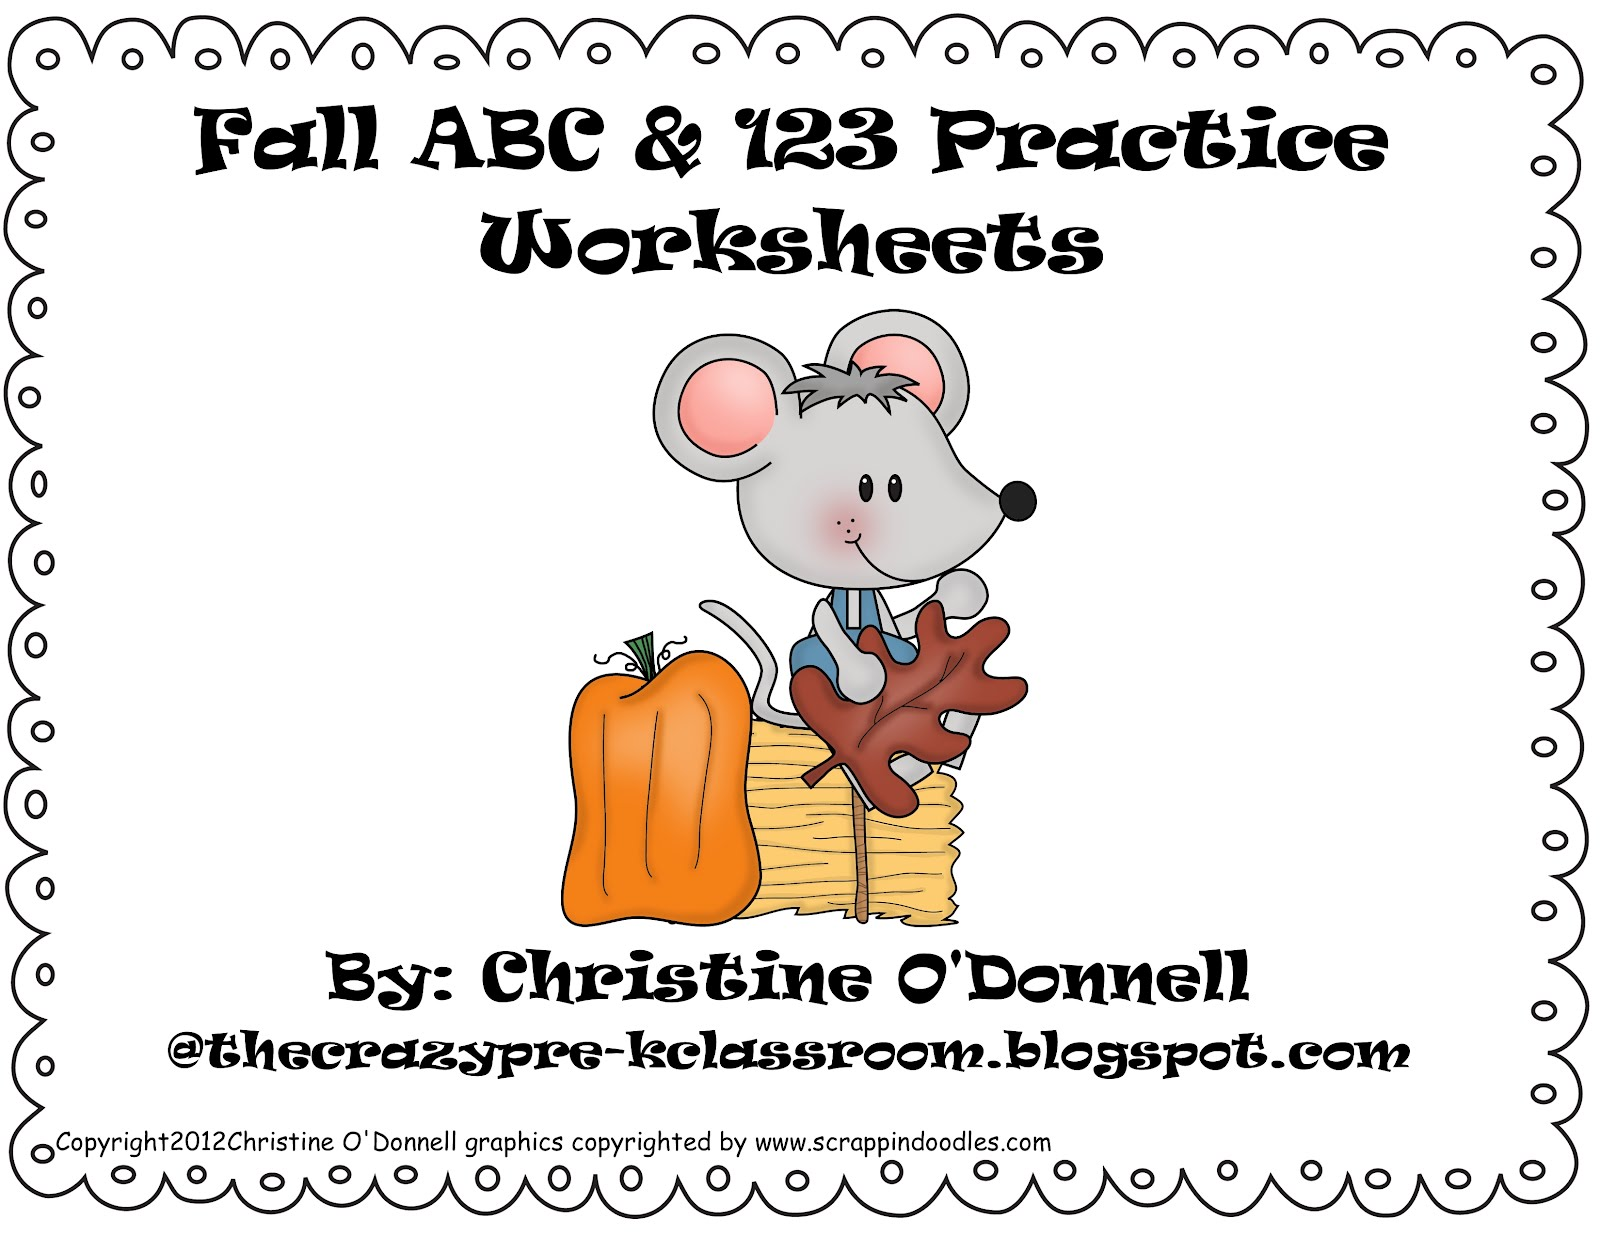 medium resolution of The Crazy Pre-K Classroom: Fall Freebie! Fall themed ABC and 123 Worksheets!  Deanna Jump reaches $1